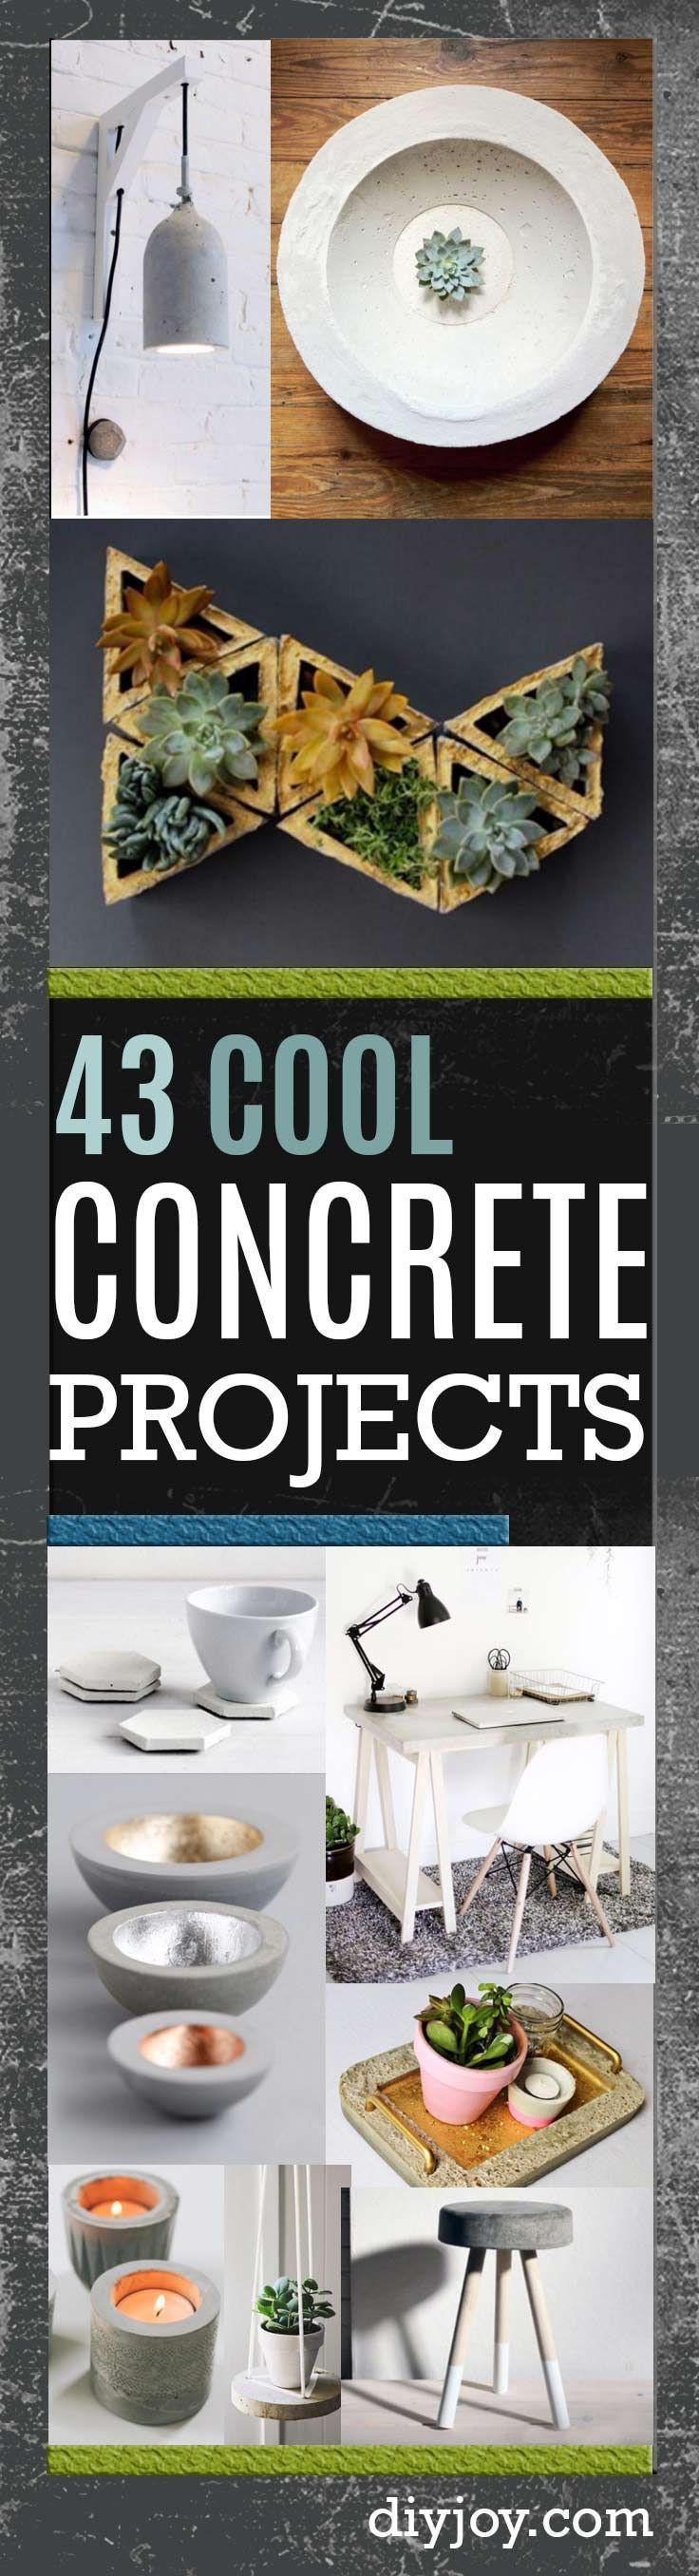 43 DIY concrete crafts and DIY Projects - cheap and creative projects and tutorials for countertops and ideas for floors, patio and porch decor, tables, planters, vases, frames, jewelry holder, home decor and DIY gifts. http://diyjoy.com/diy-concrete-crafts-projects-